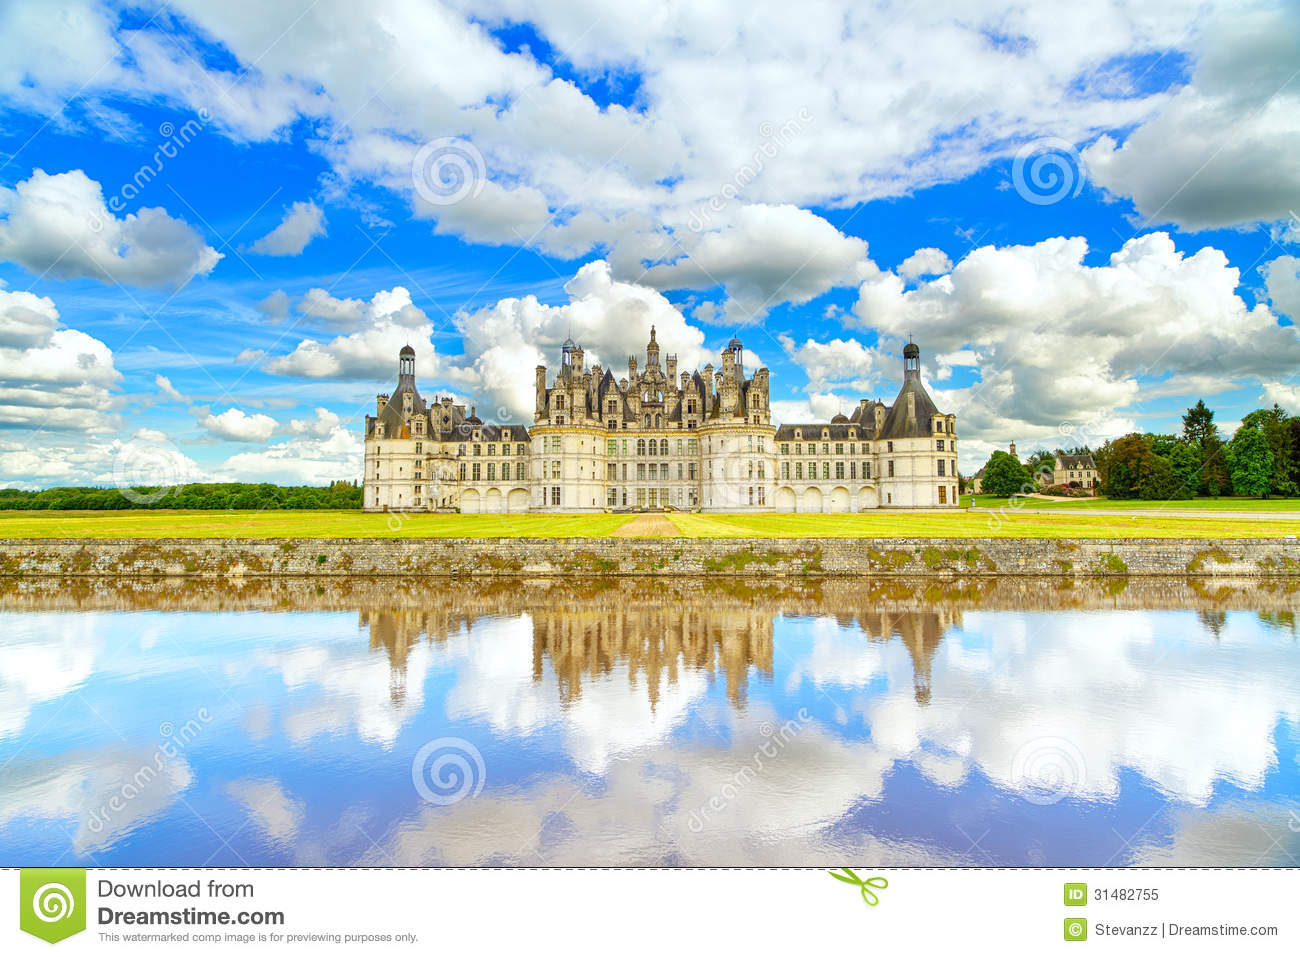 Chateau De Chambord Unesco Medieval French Castle And